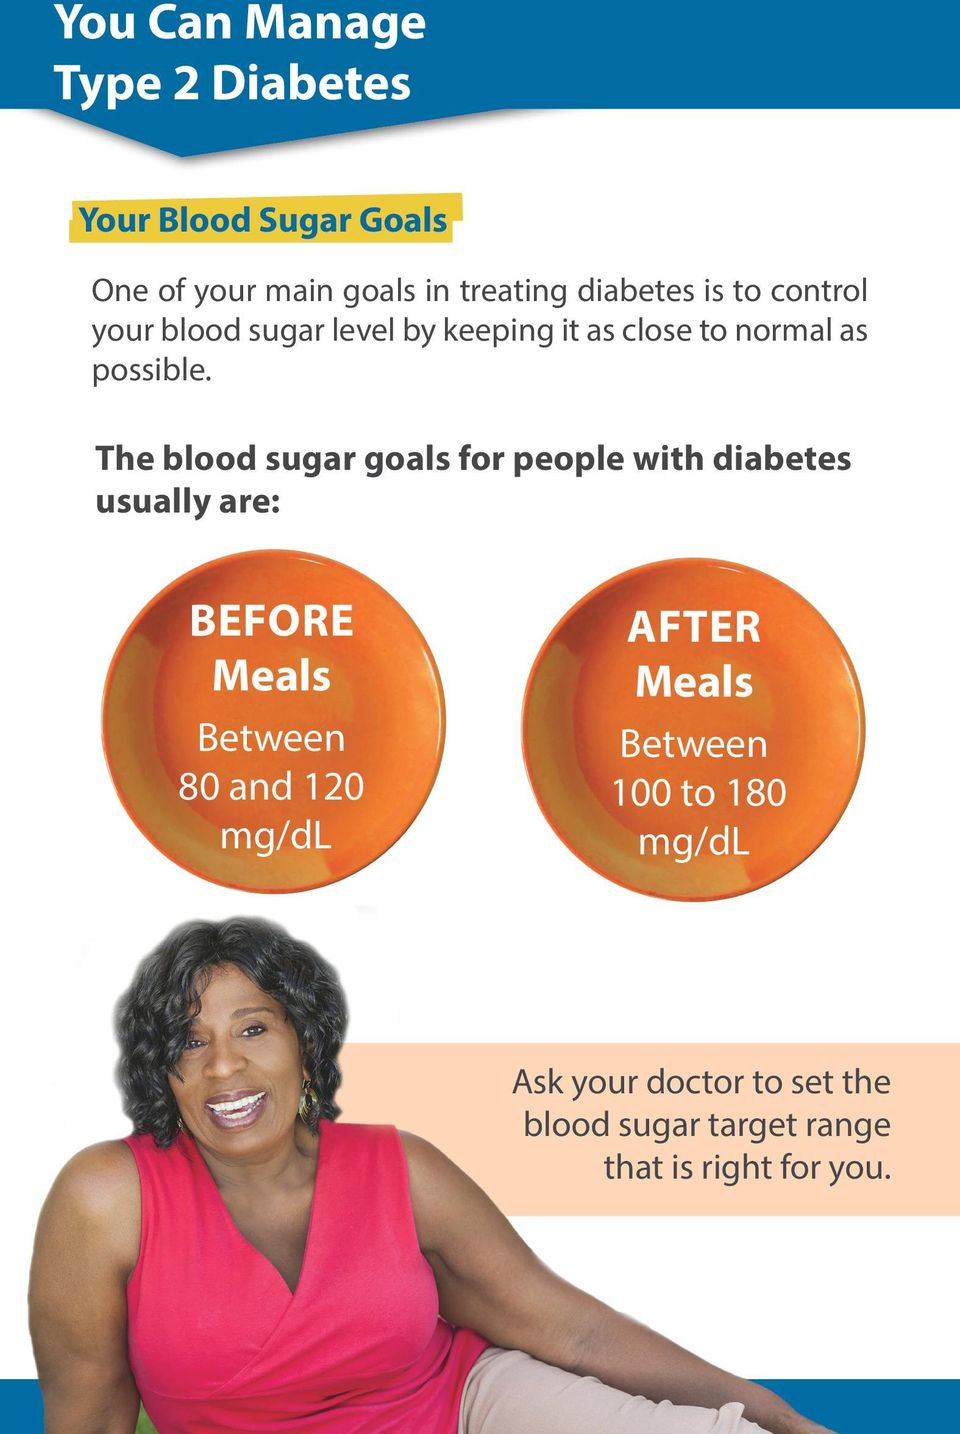 The blood sugar goals for people with diabetes usually are: Before Meals Between 80 and 120 mg/dl